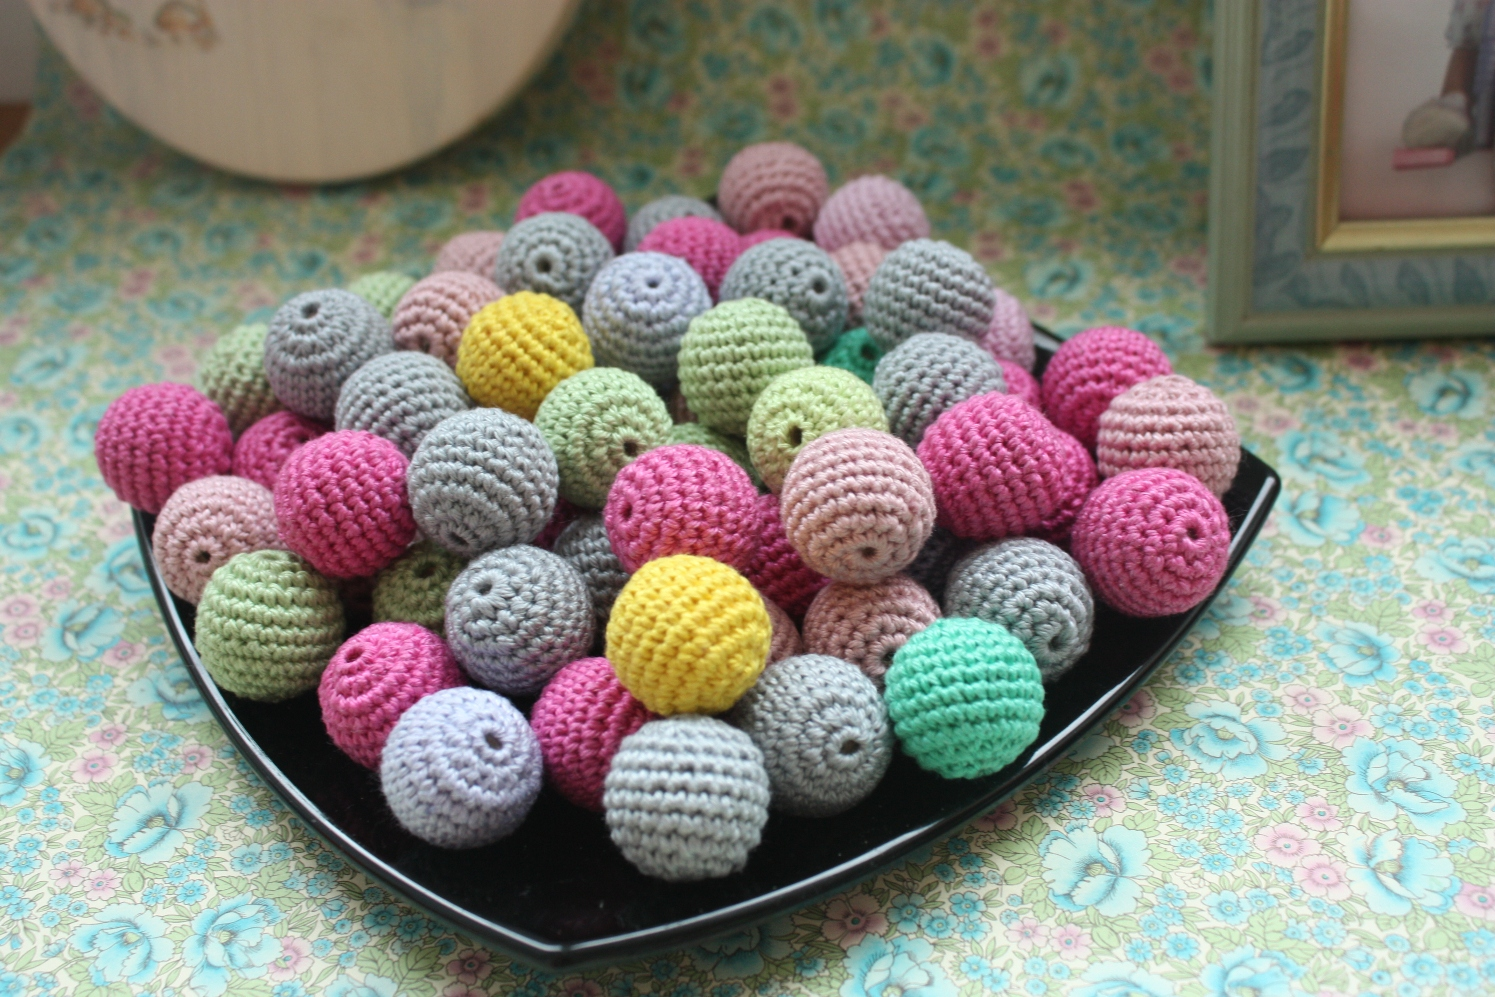 Crocheting Beads : Amigurumi creations by Happyamigurumi: Summer time in Estonia